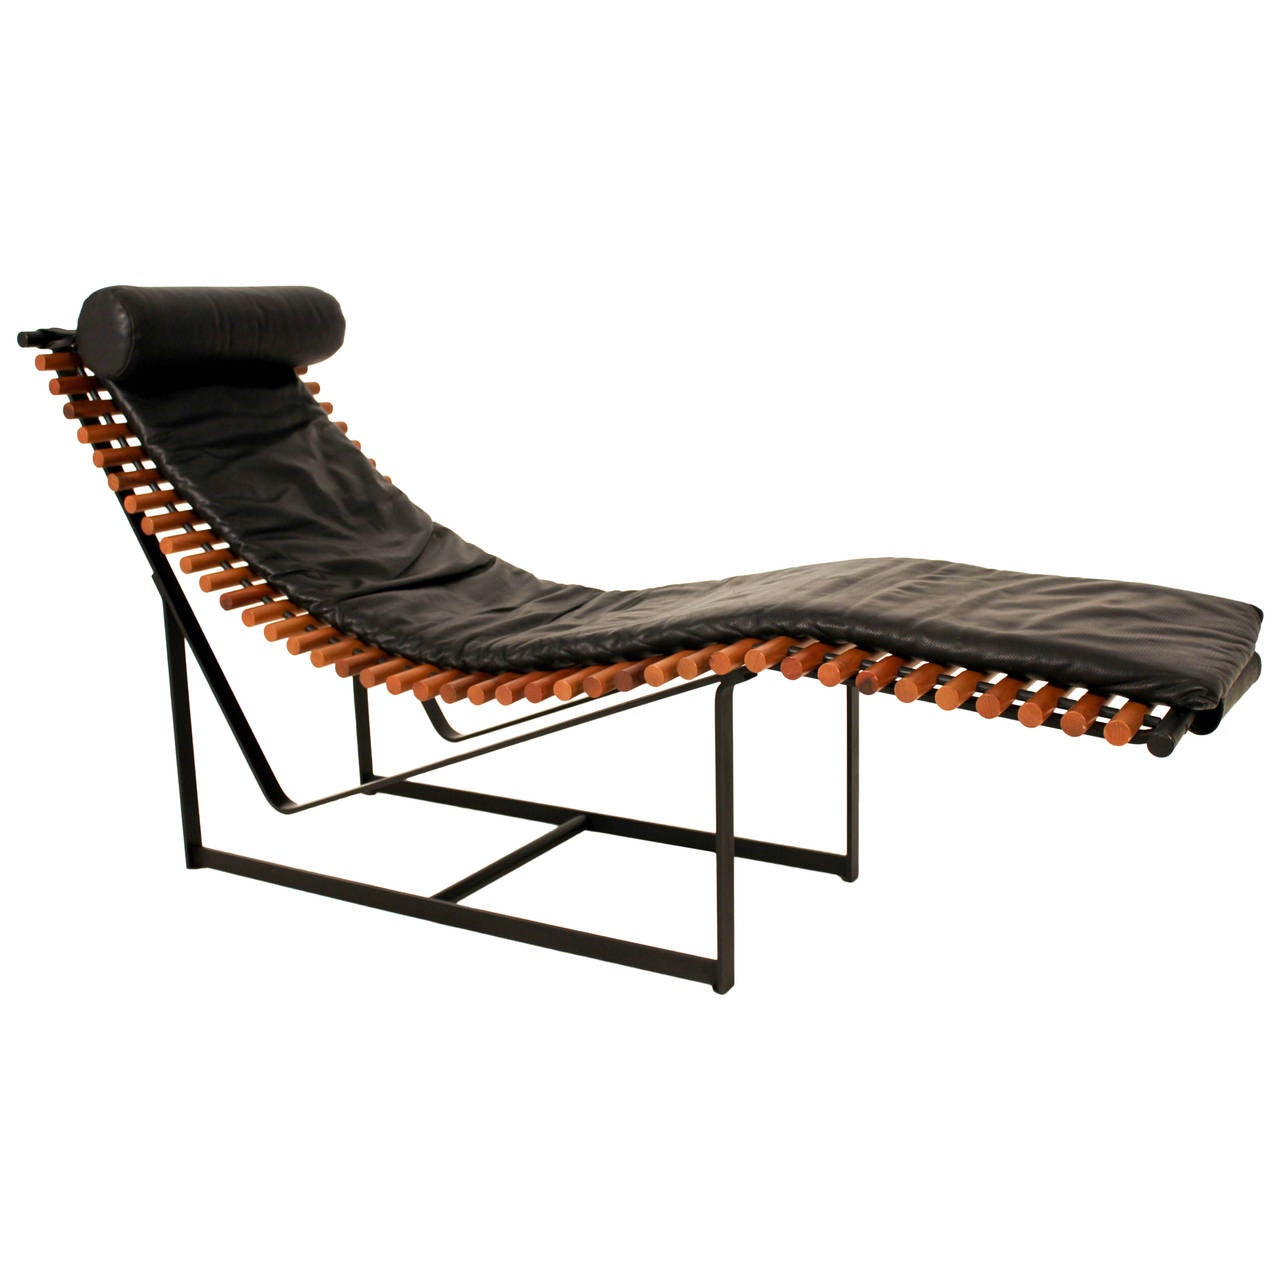 funky mid century modern chaise longue 1970s for sale at 1stdibs. Black Bedroom Furniture Sets. Home Design Ideas